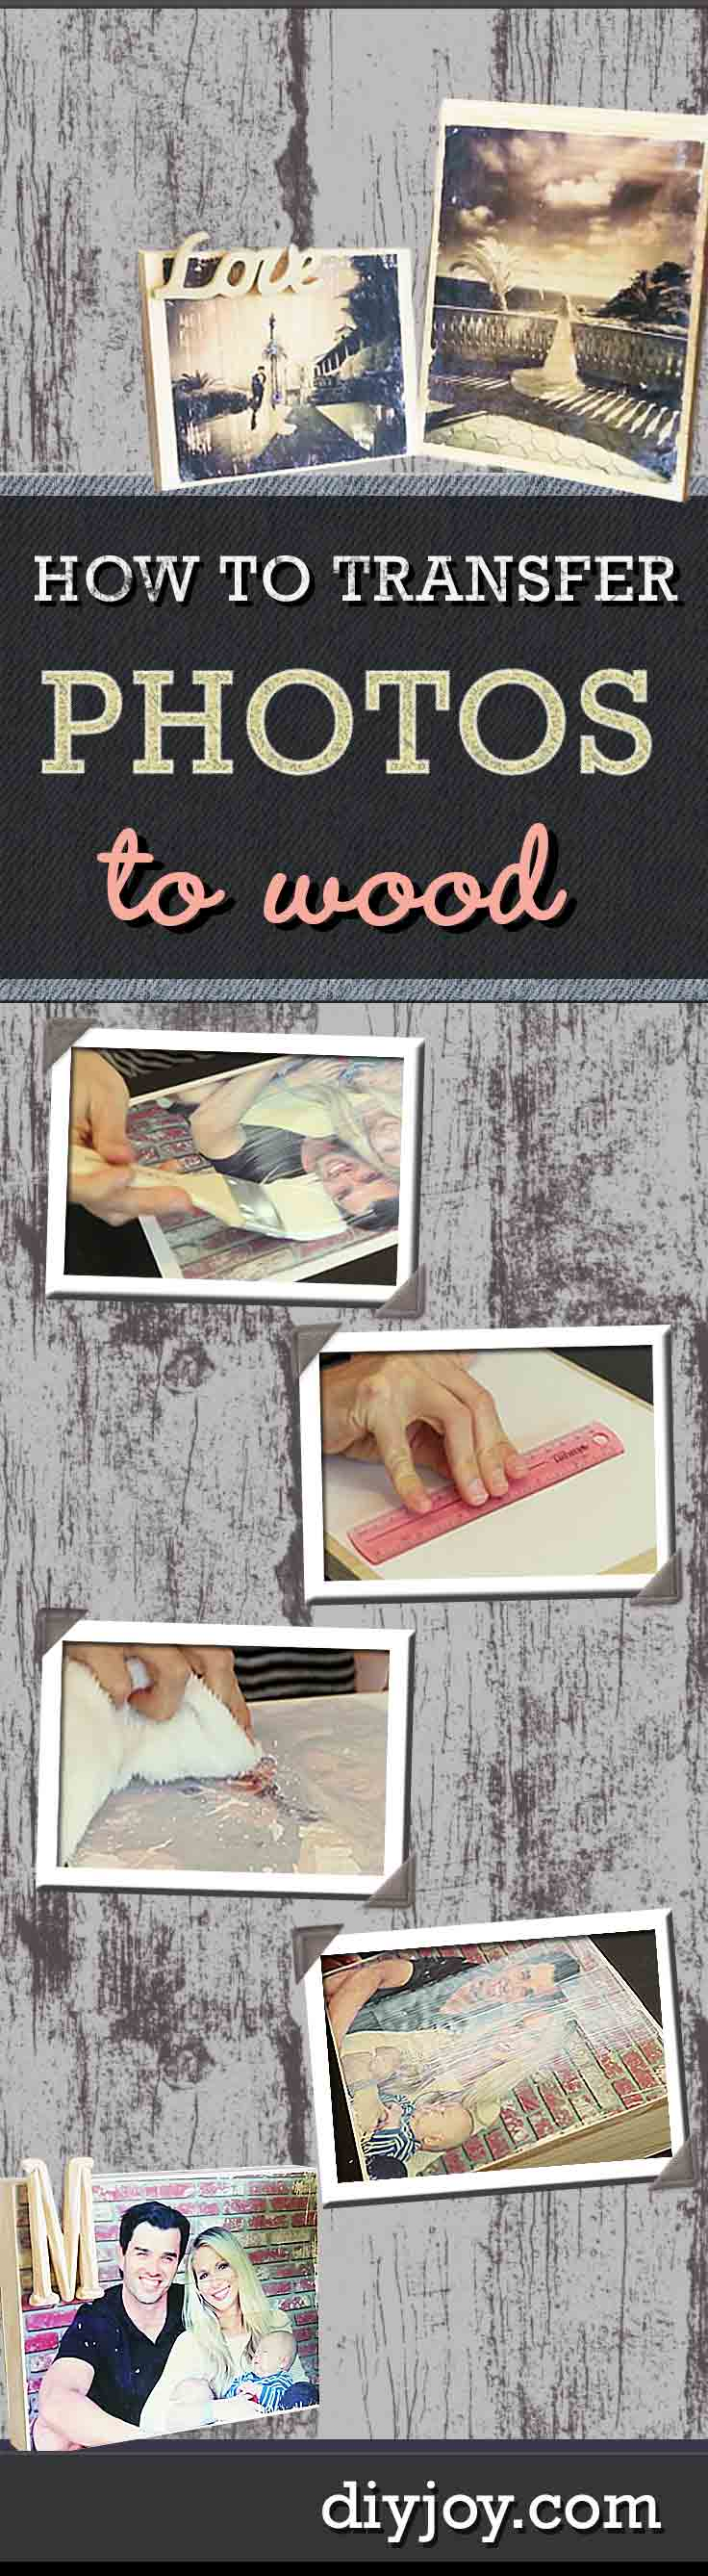 How to Transfer Photos to Wood   Easy Picture Framing Ideas for DIY Rustic Home Decor   DIY JOY Crafts and Gifts